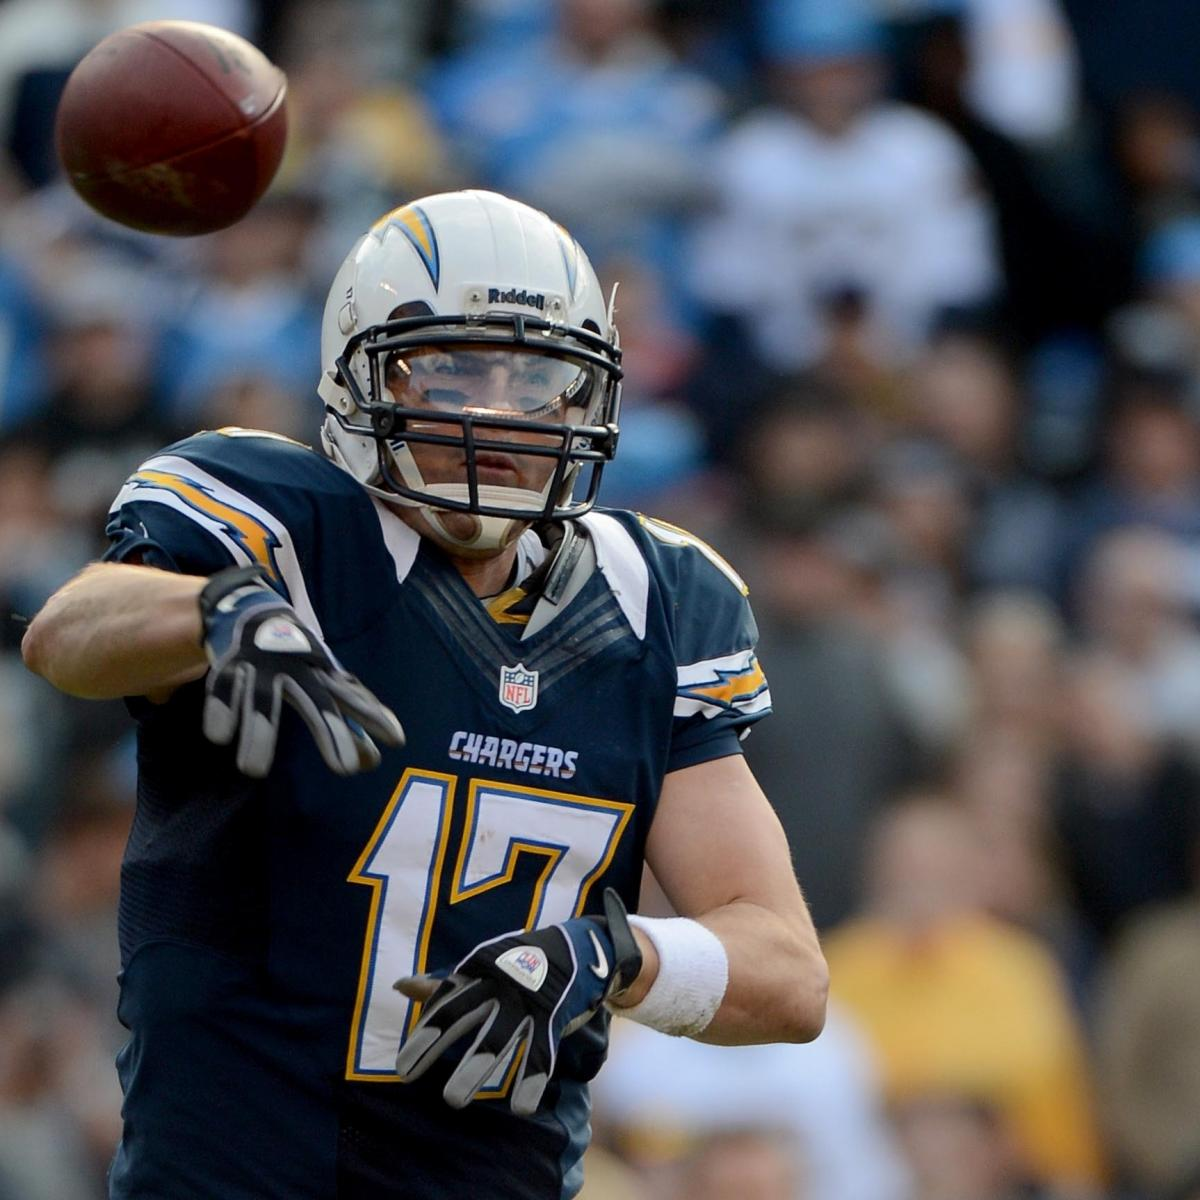 San Diego Chargers Coaches: Should The San Diego Chargers Trade QB Philip Rivers